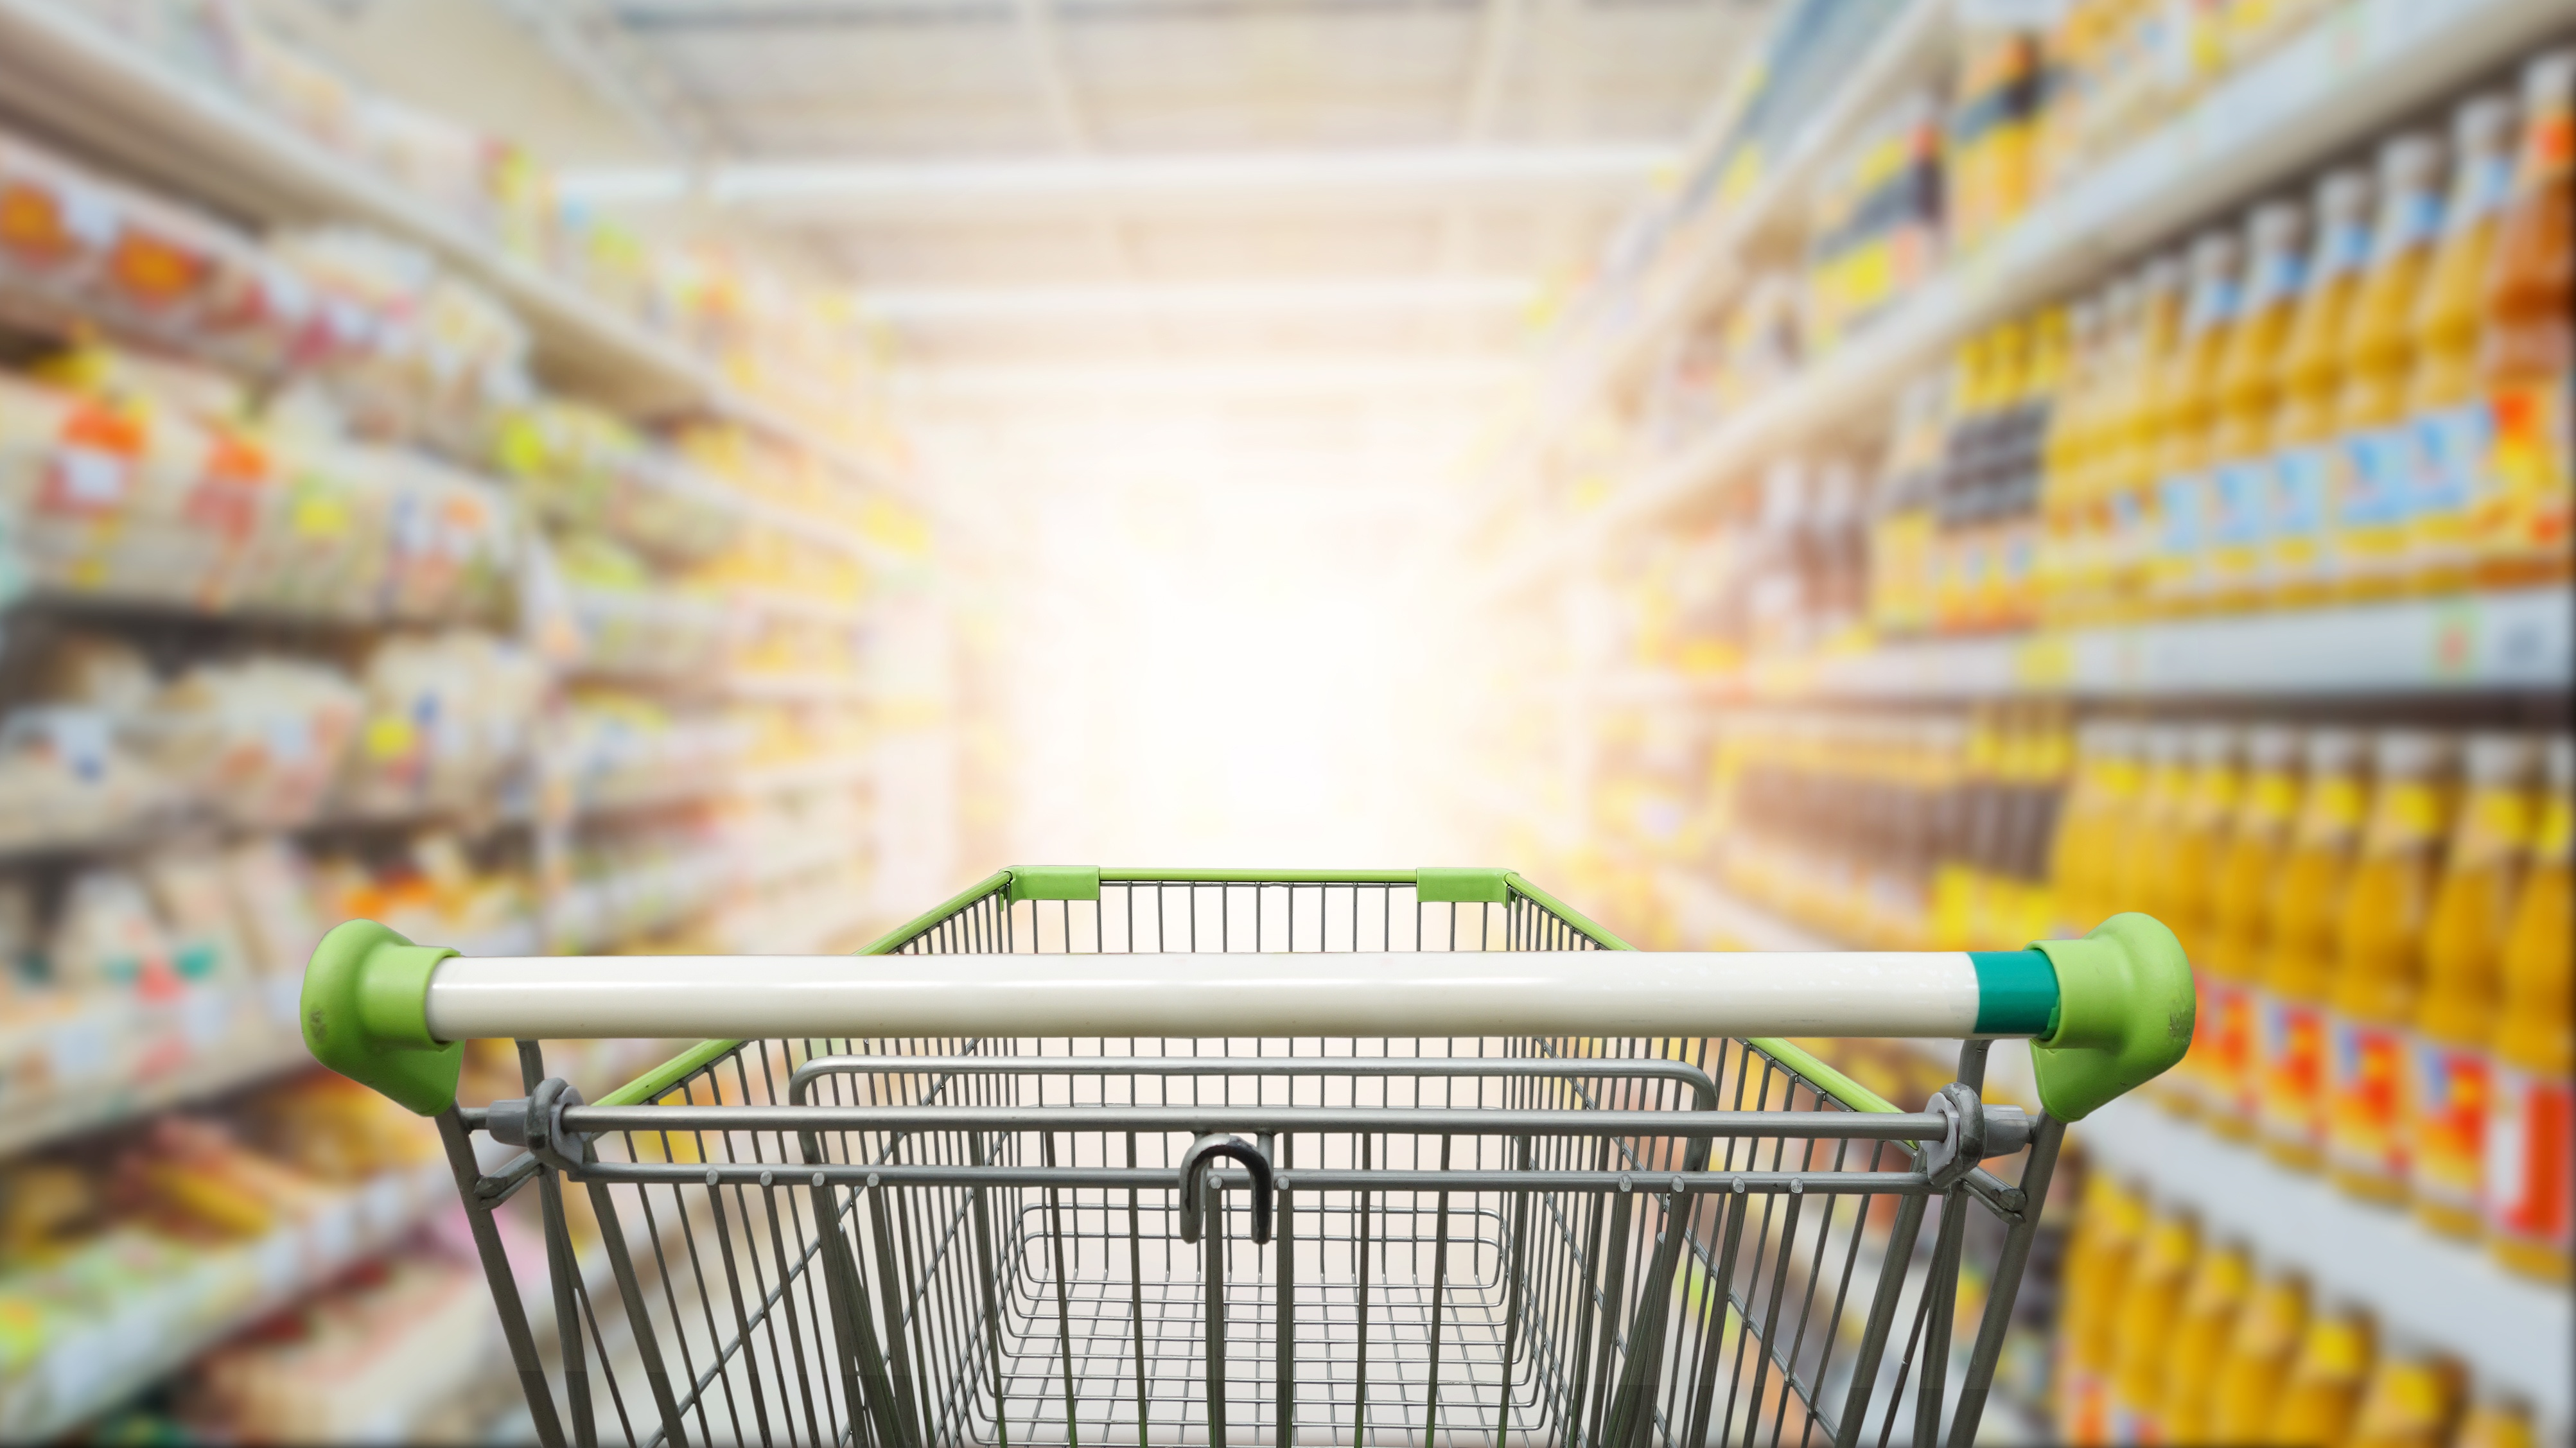 15 Tips on How to Save Money on Groceries